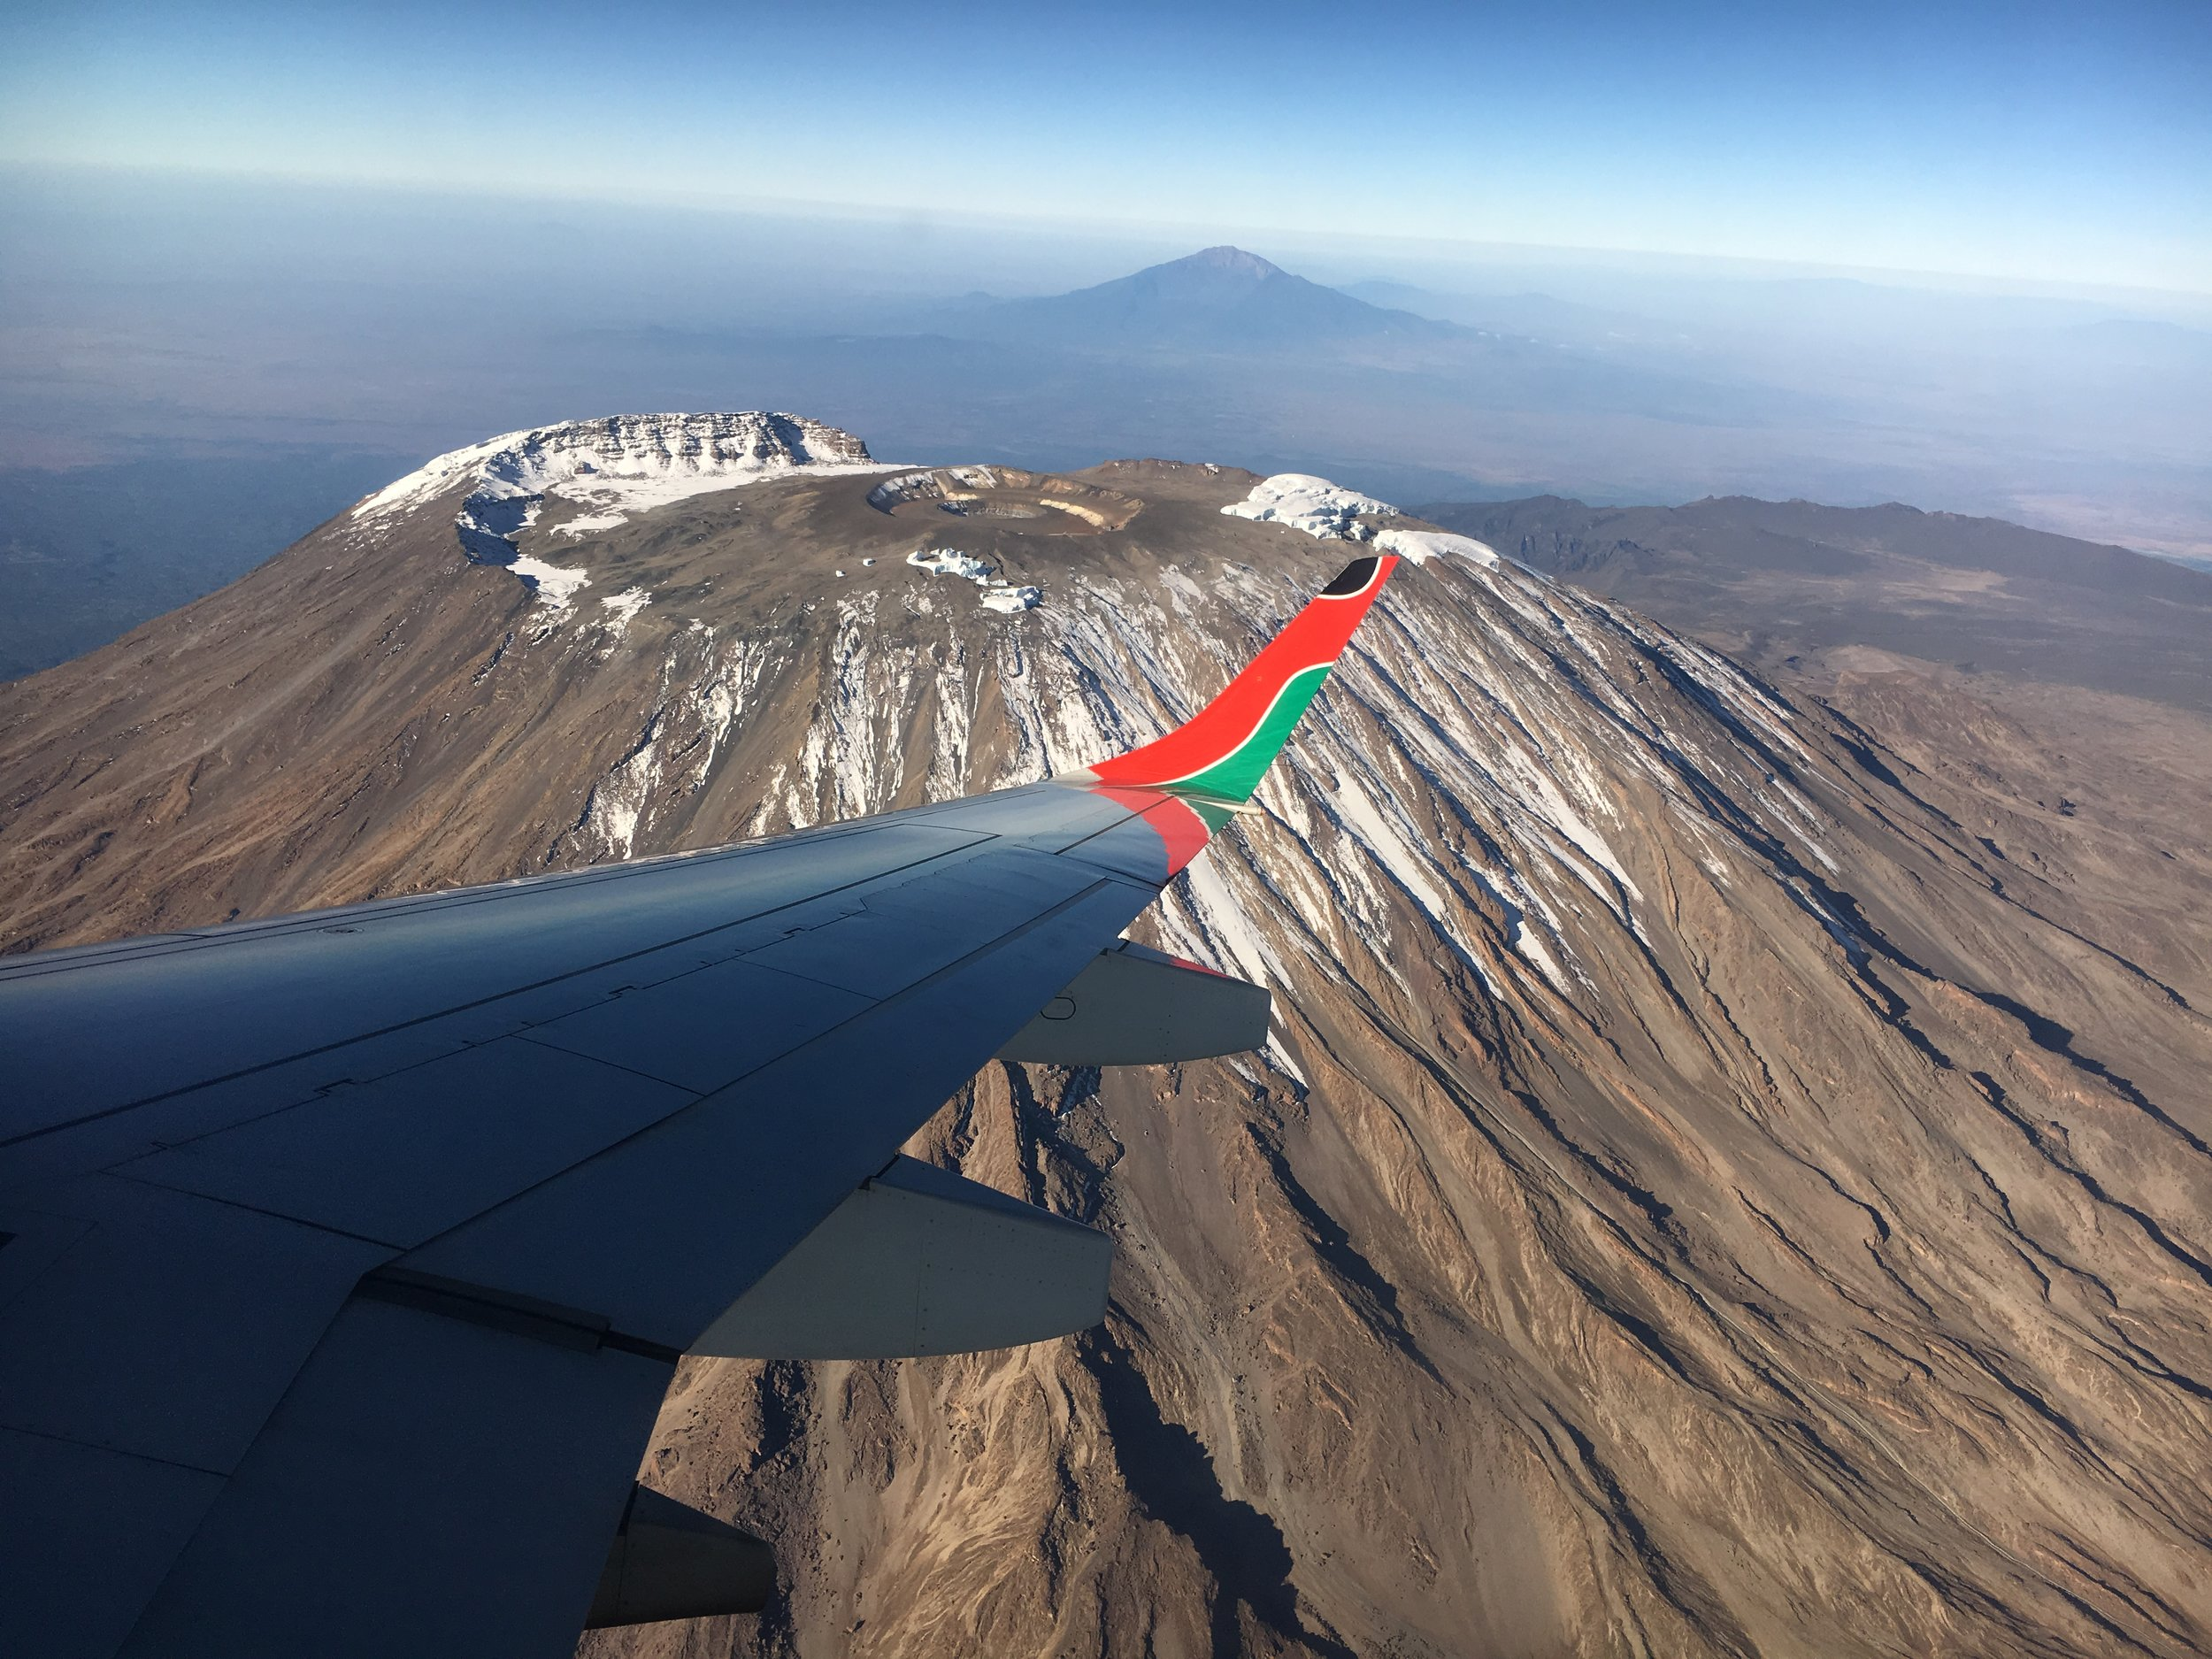 Flying in, seeing the Kili summit and reality of the challenge was setting in (Pic courtesy of hiking pal Jane)